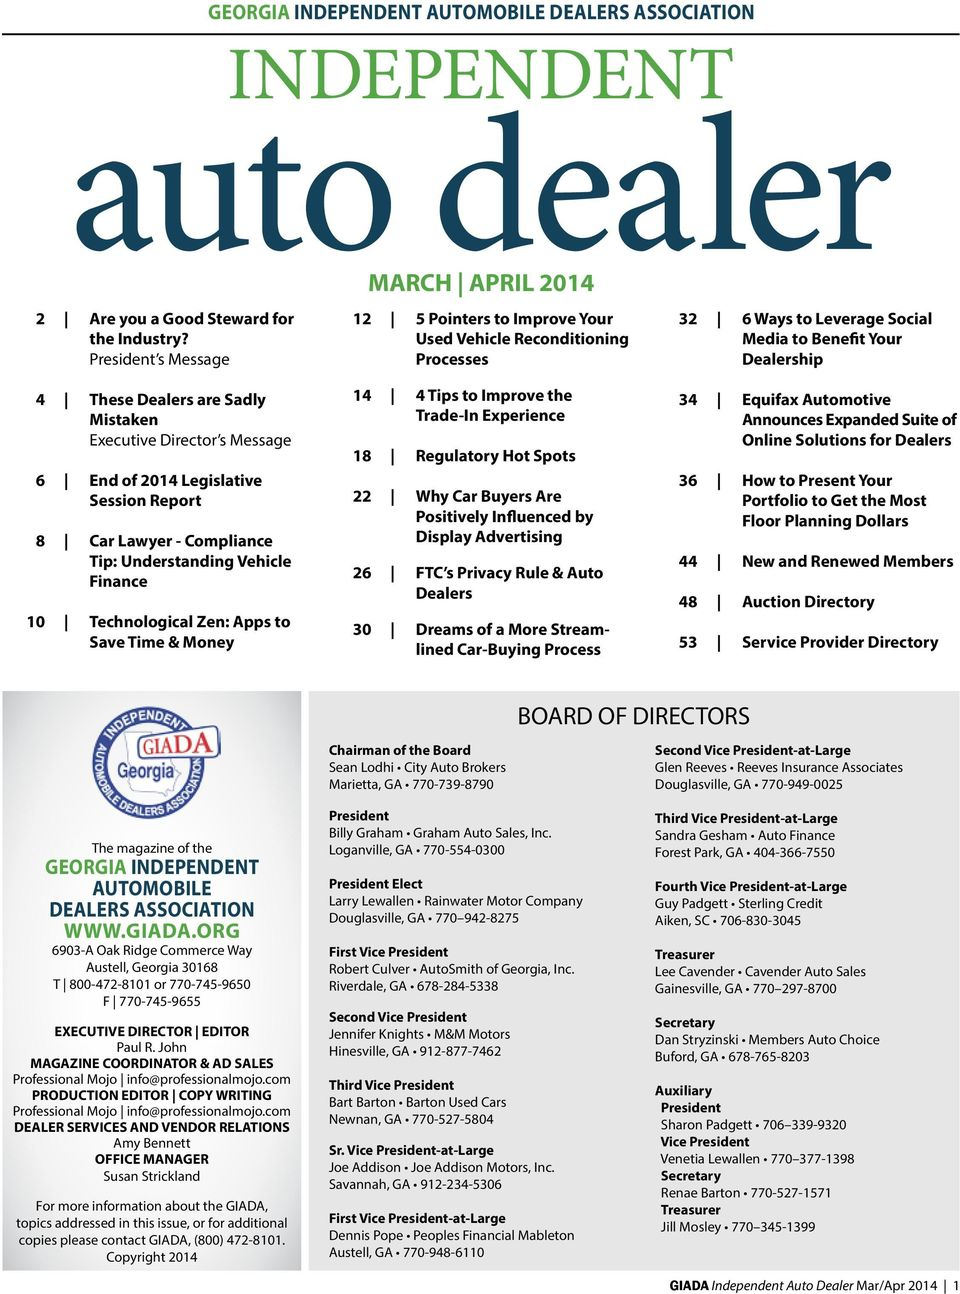 Technological Zen: Apps to Save Time & Money 12 5 Pointers to Improve Your Used Vehicle Reconditioning Processes 14 4 Tips to Improve the Trade-In Experience 18 Regulatory Hot Spots 22 Why Car Buyers